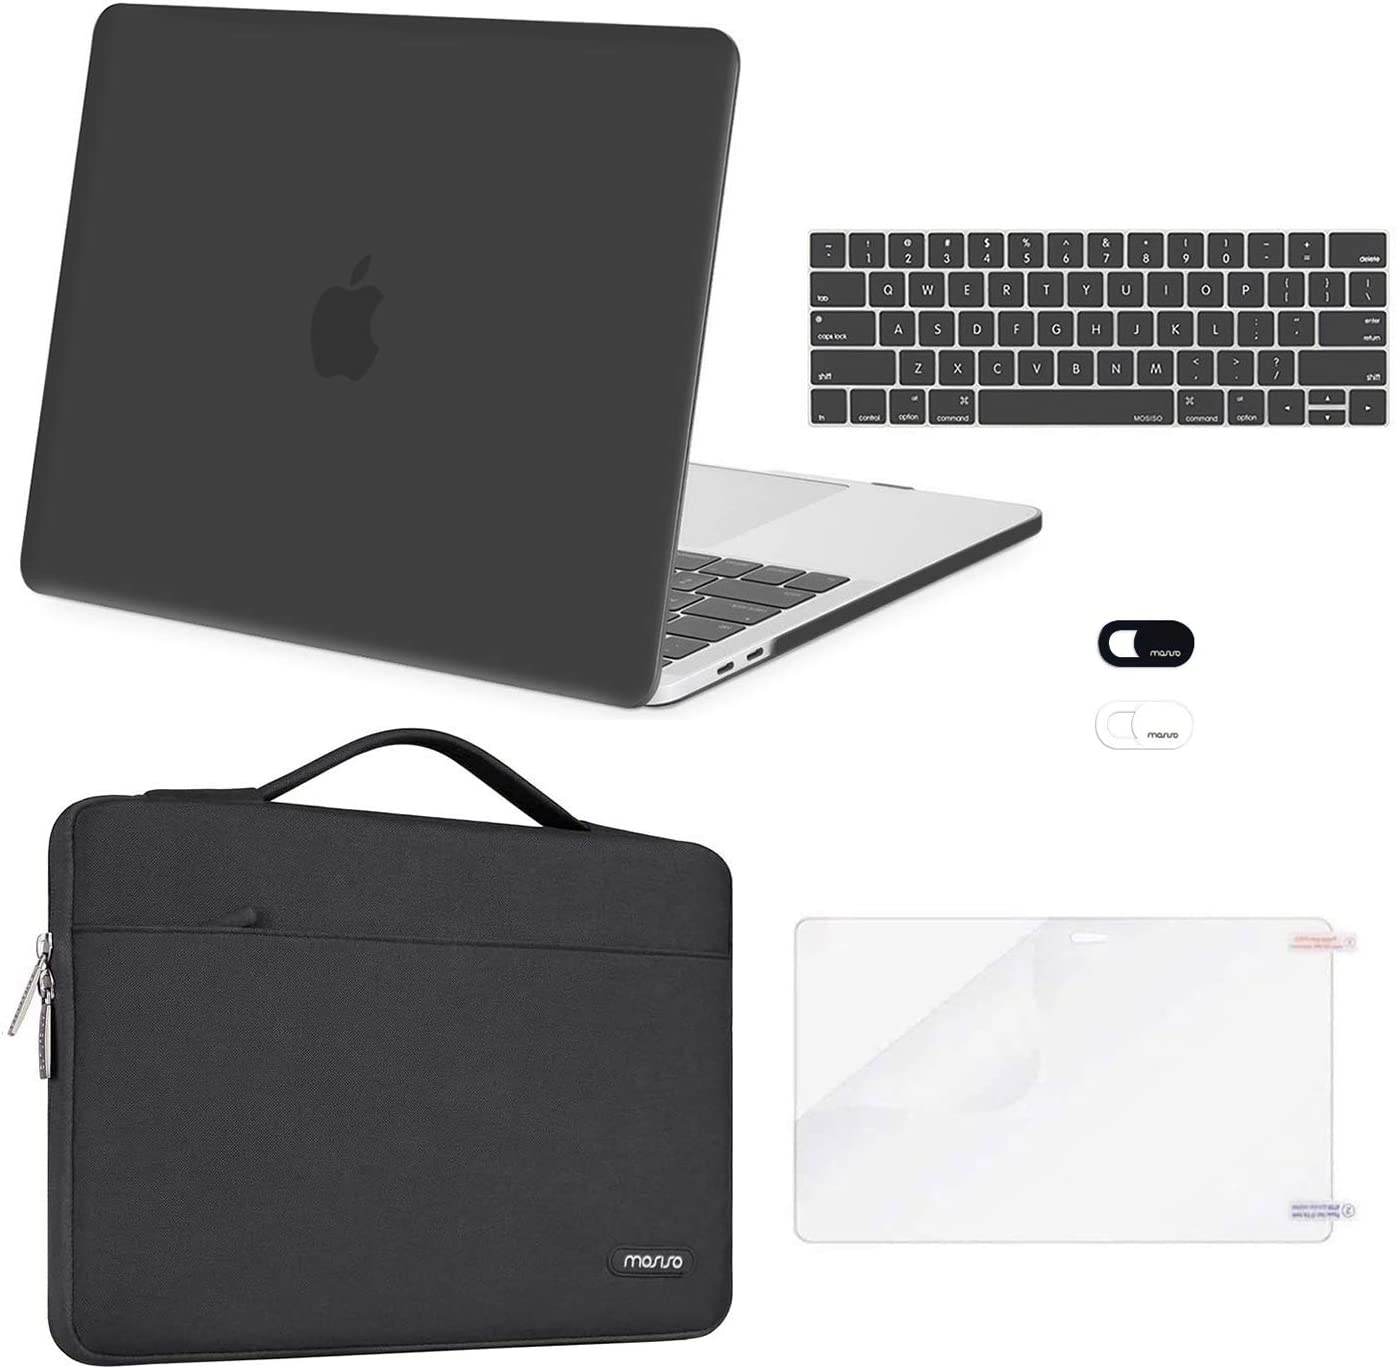 MOSISO Compatible with MacBook Pro 13 inch Case 2016-2020 Release A2289 A2251 A2159 A1989 A1706 A1708, Plastic Hard Shell Case&Sleeve Bag&Keyboard Skin&Webcam Cover&Screen Protector, Space Gray